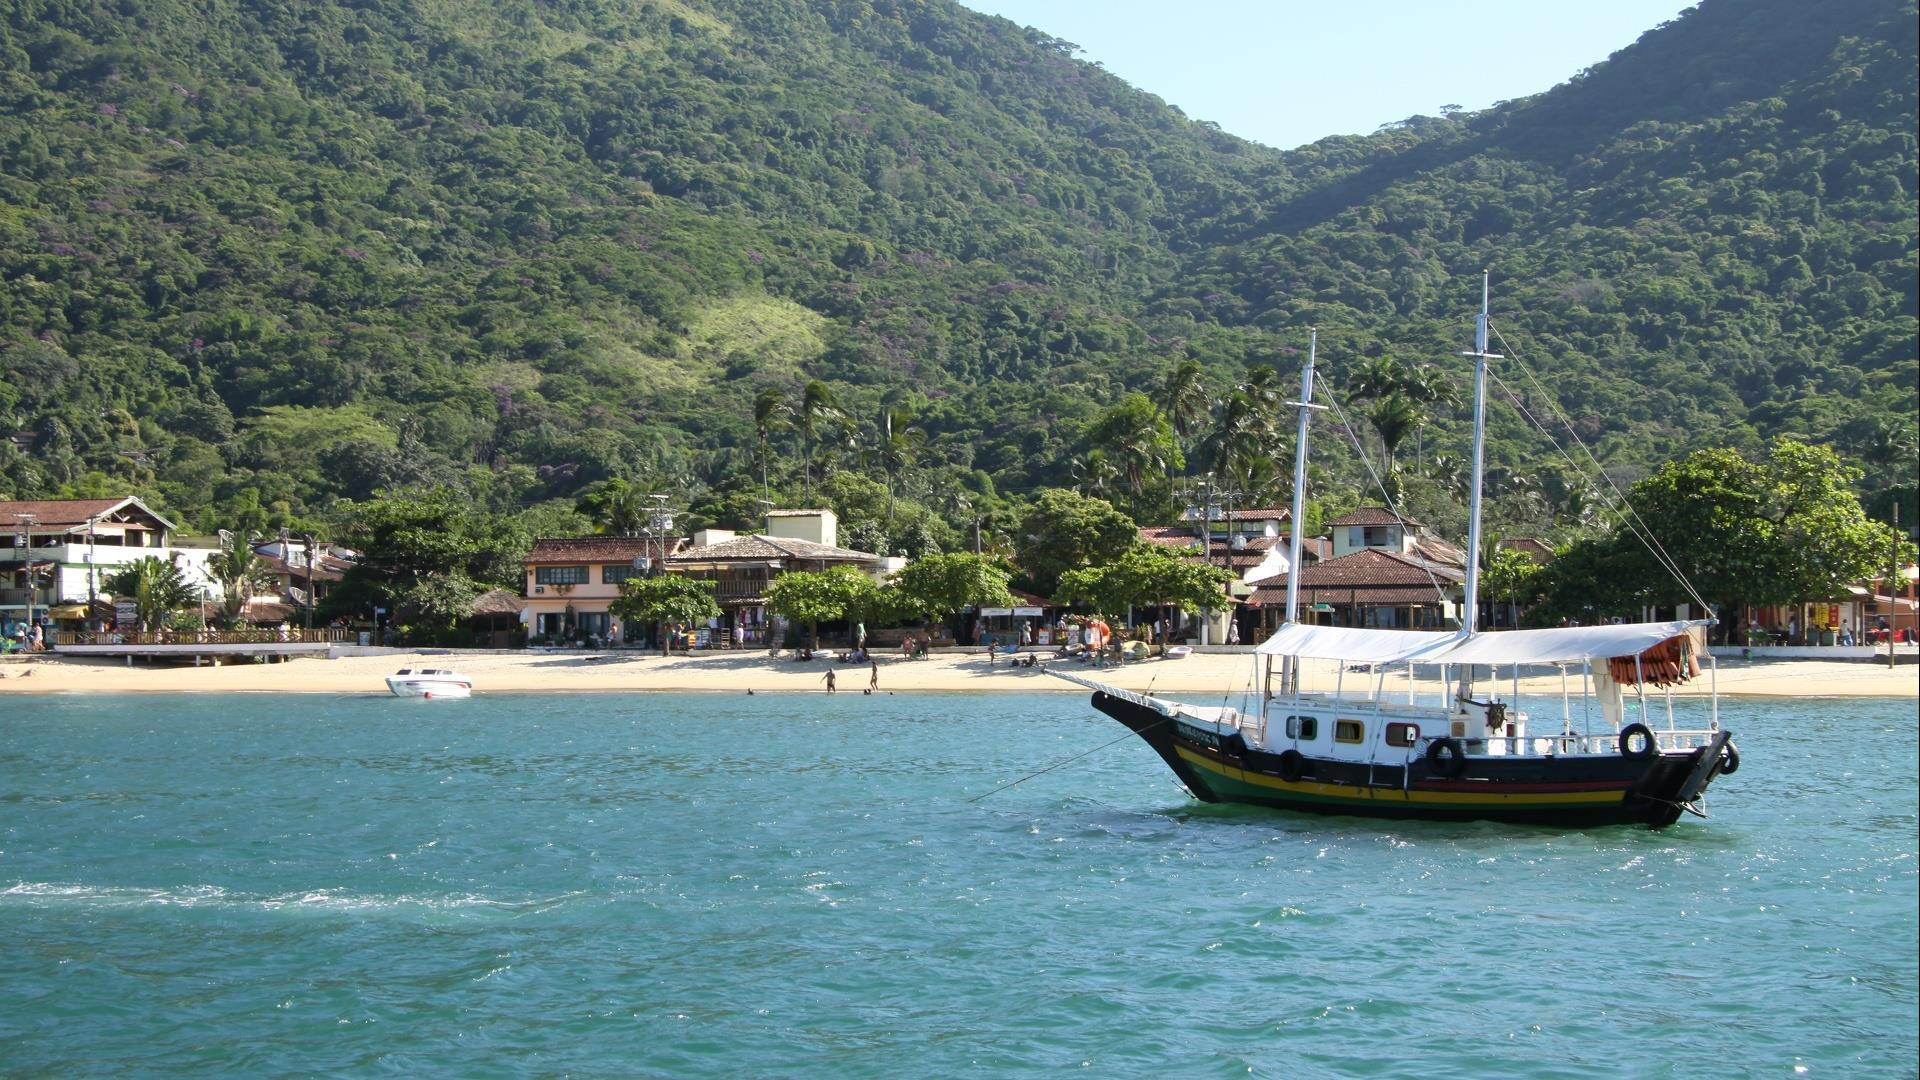 A typical boat in front of a beach and Atlantic Rainforest of Ilha Grande, Rio de Janeiro